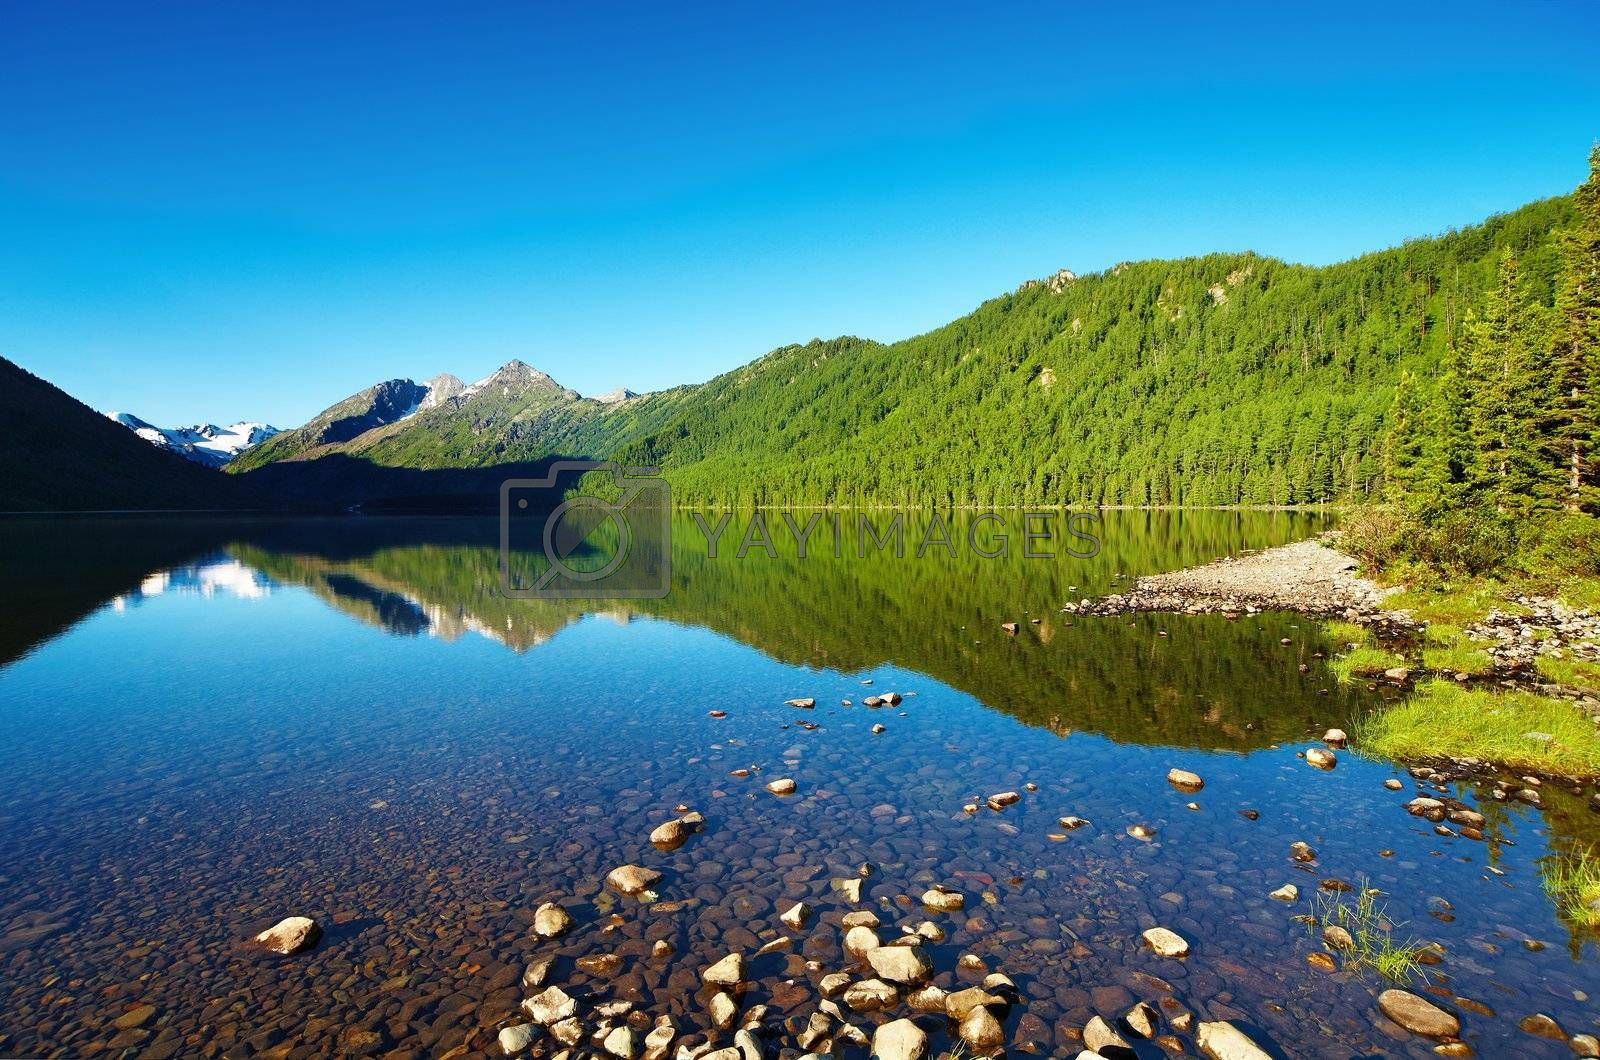 Mountain landscape with still lake and reflection